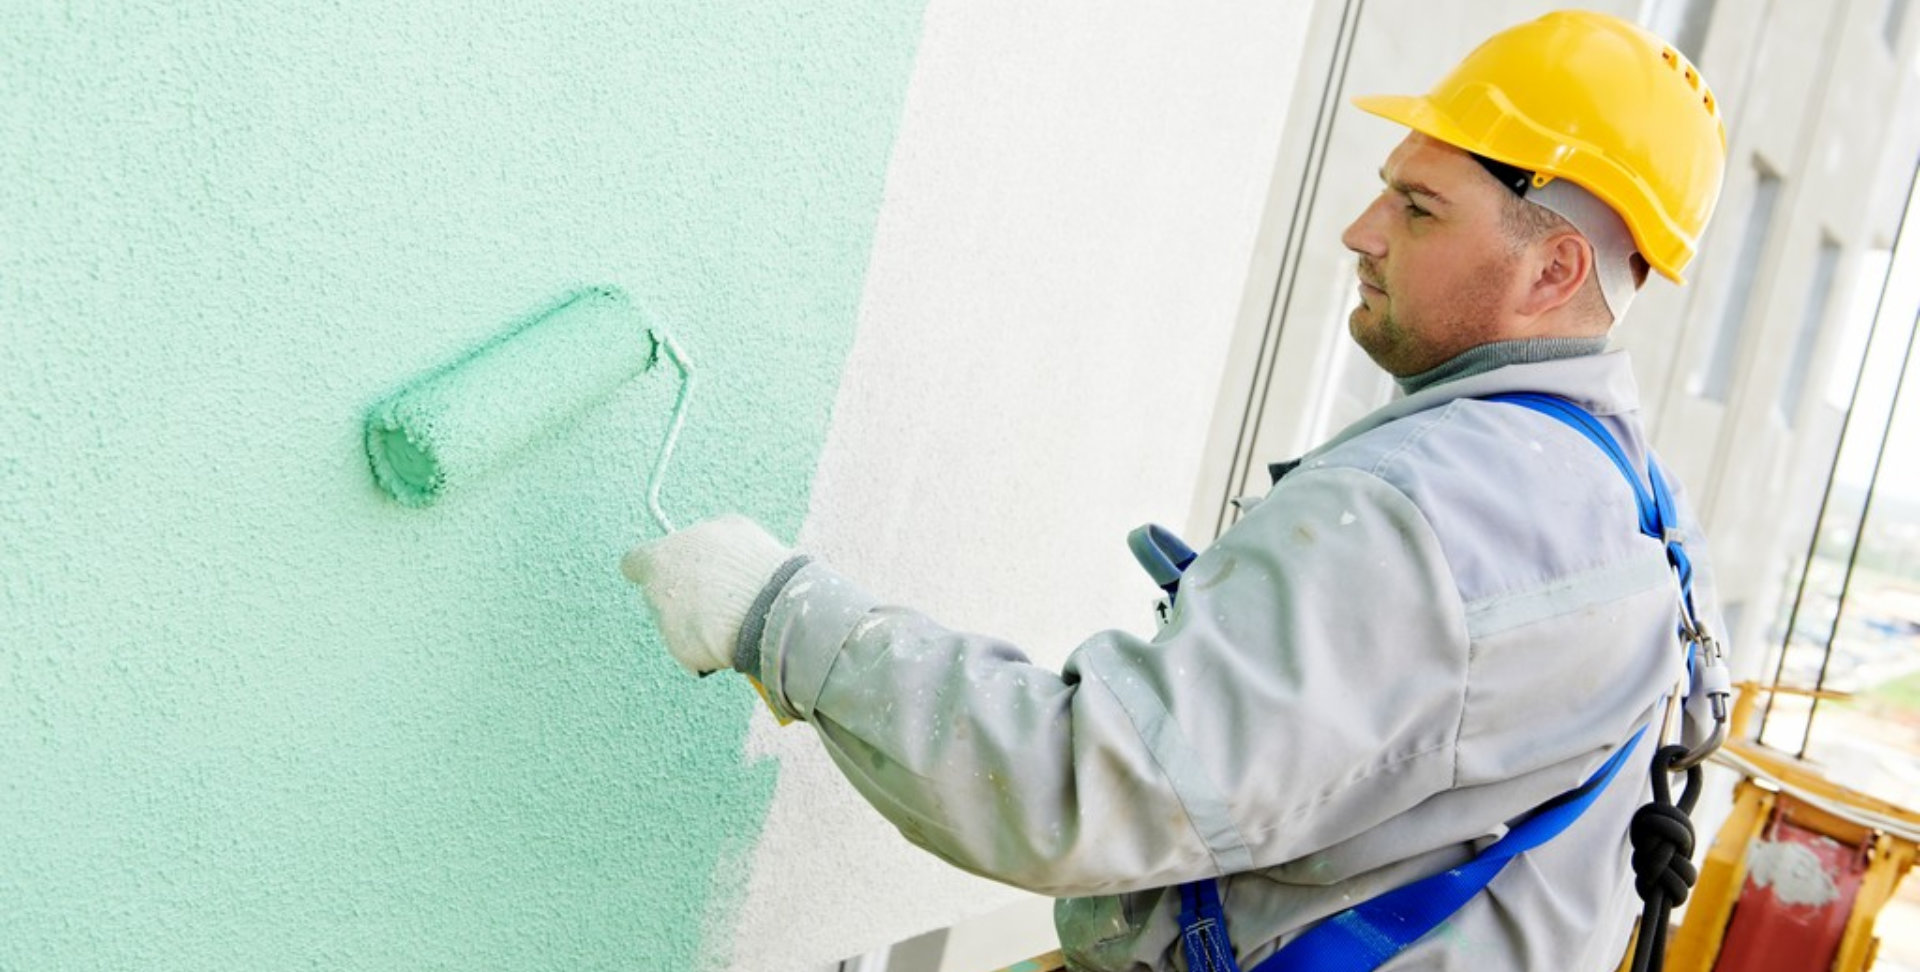 worker painting